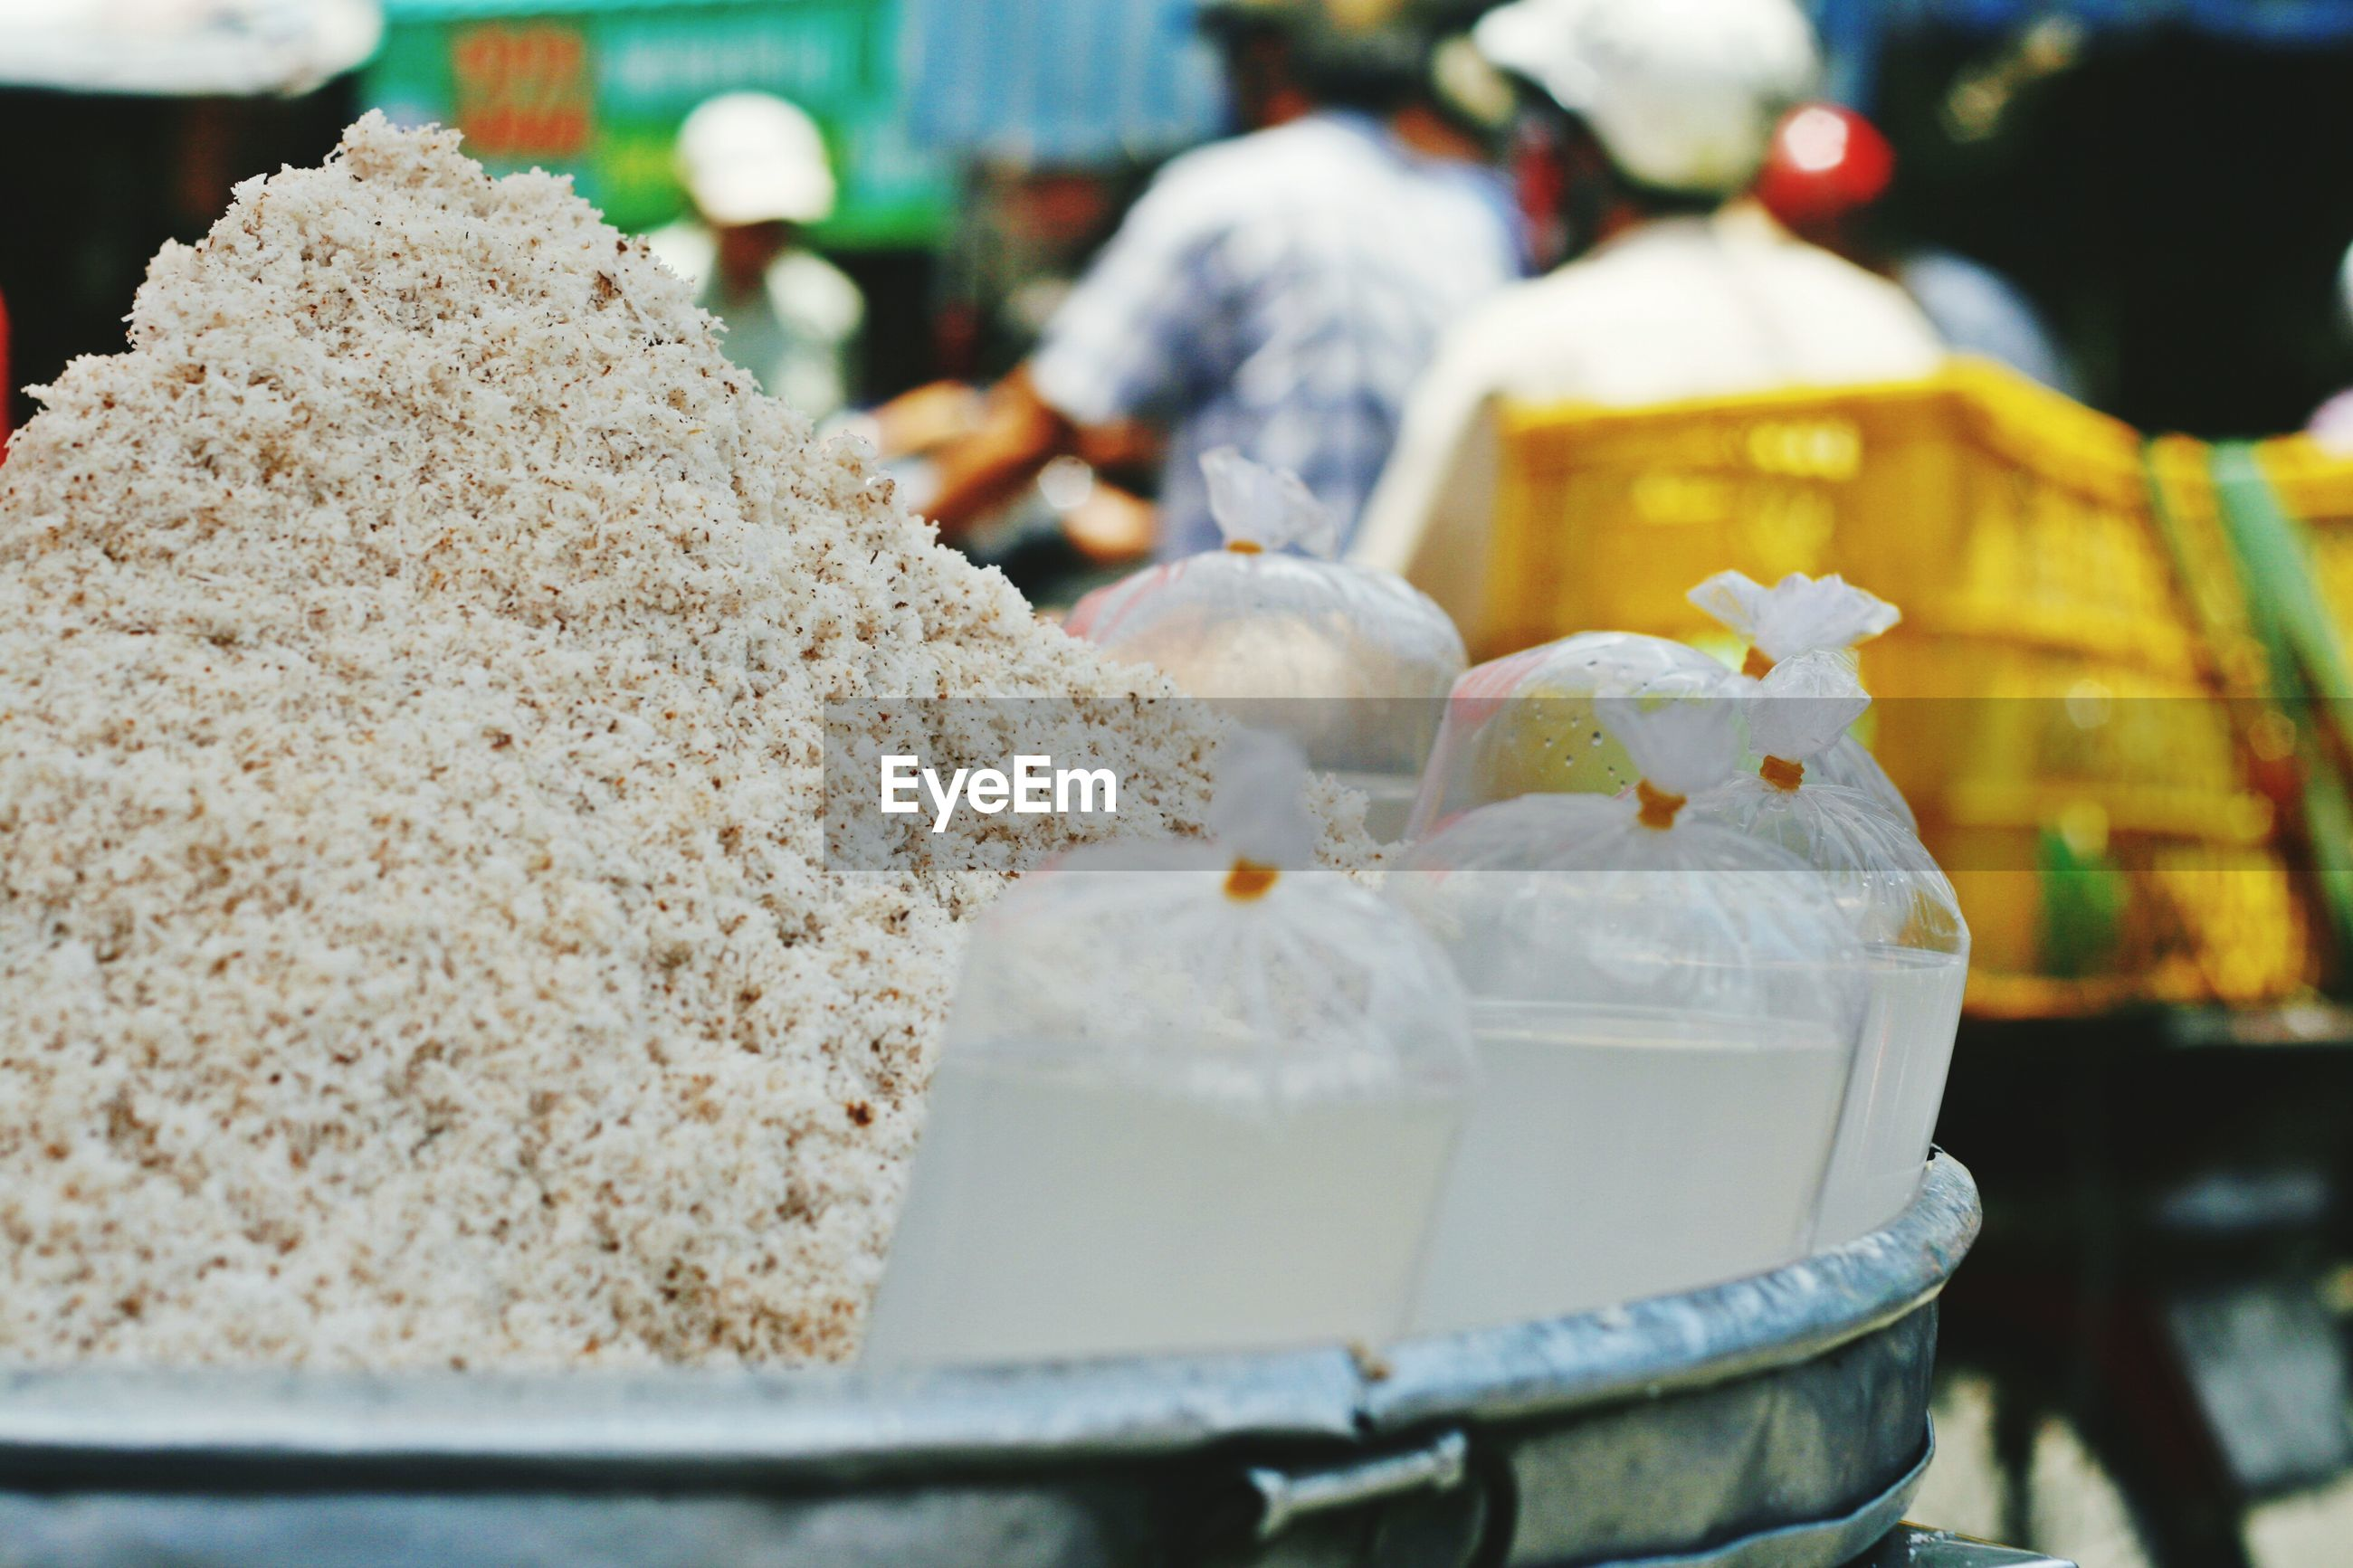 Shredded coconut and juice for sale at market